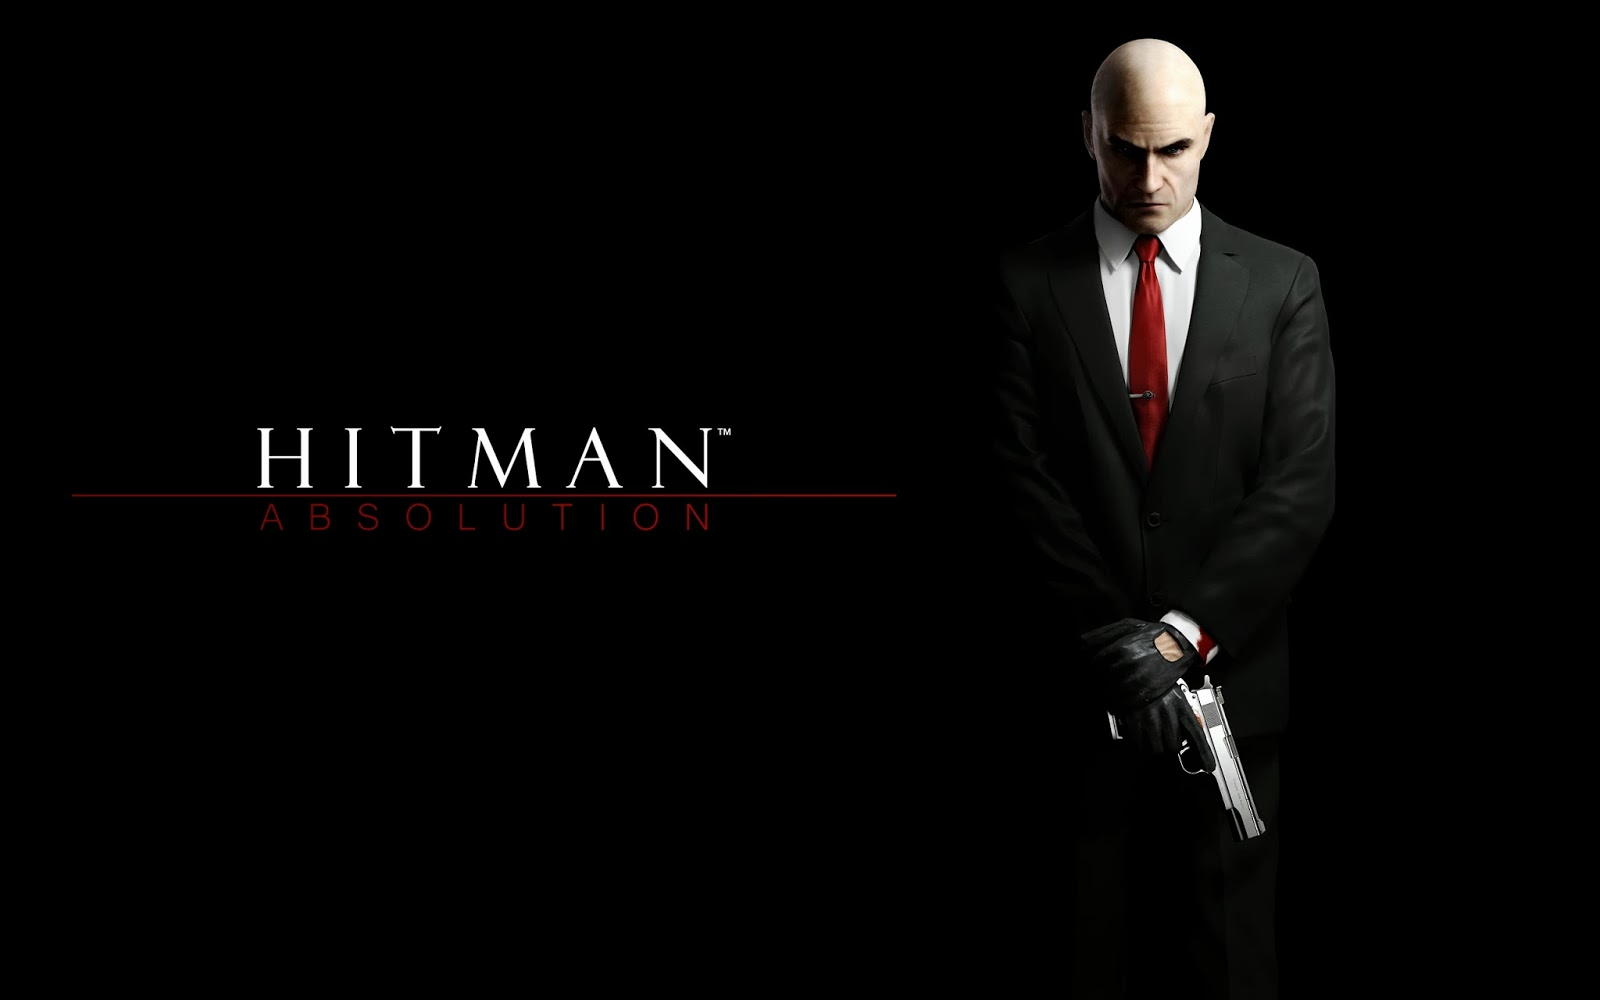 Hitman Absolution For Mac Os X Torrent